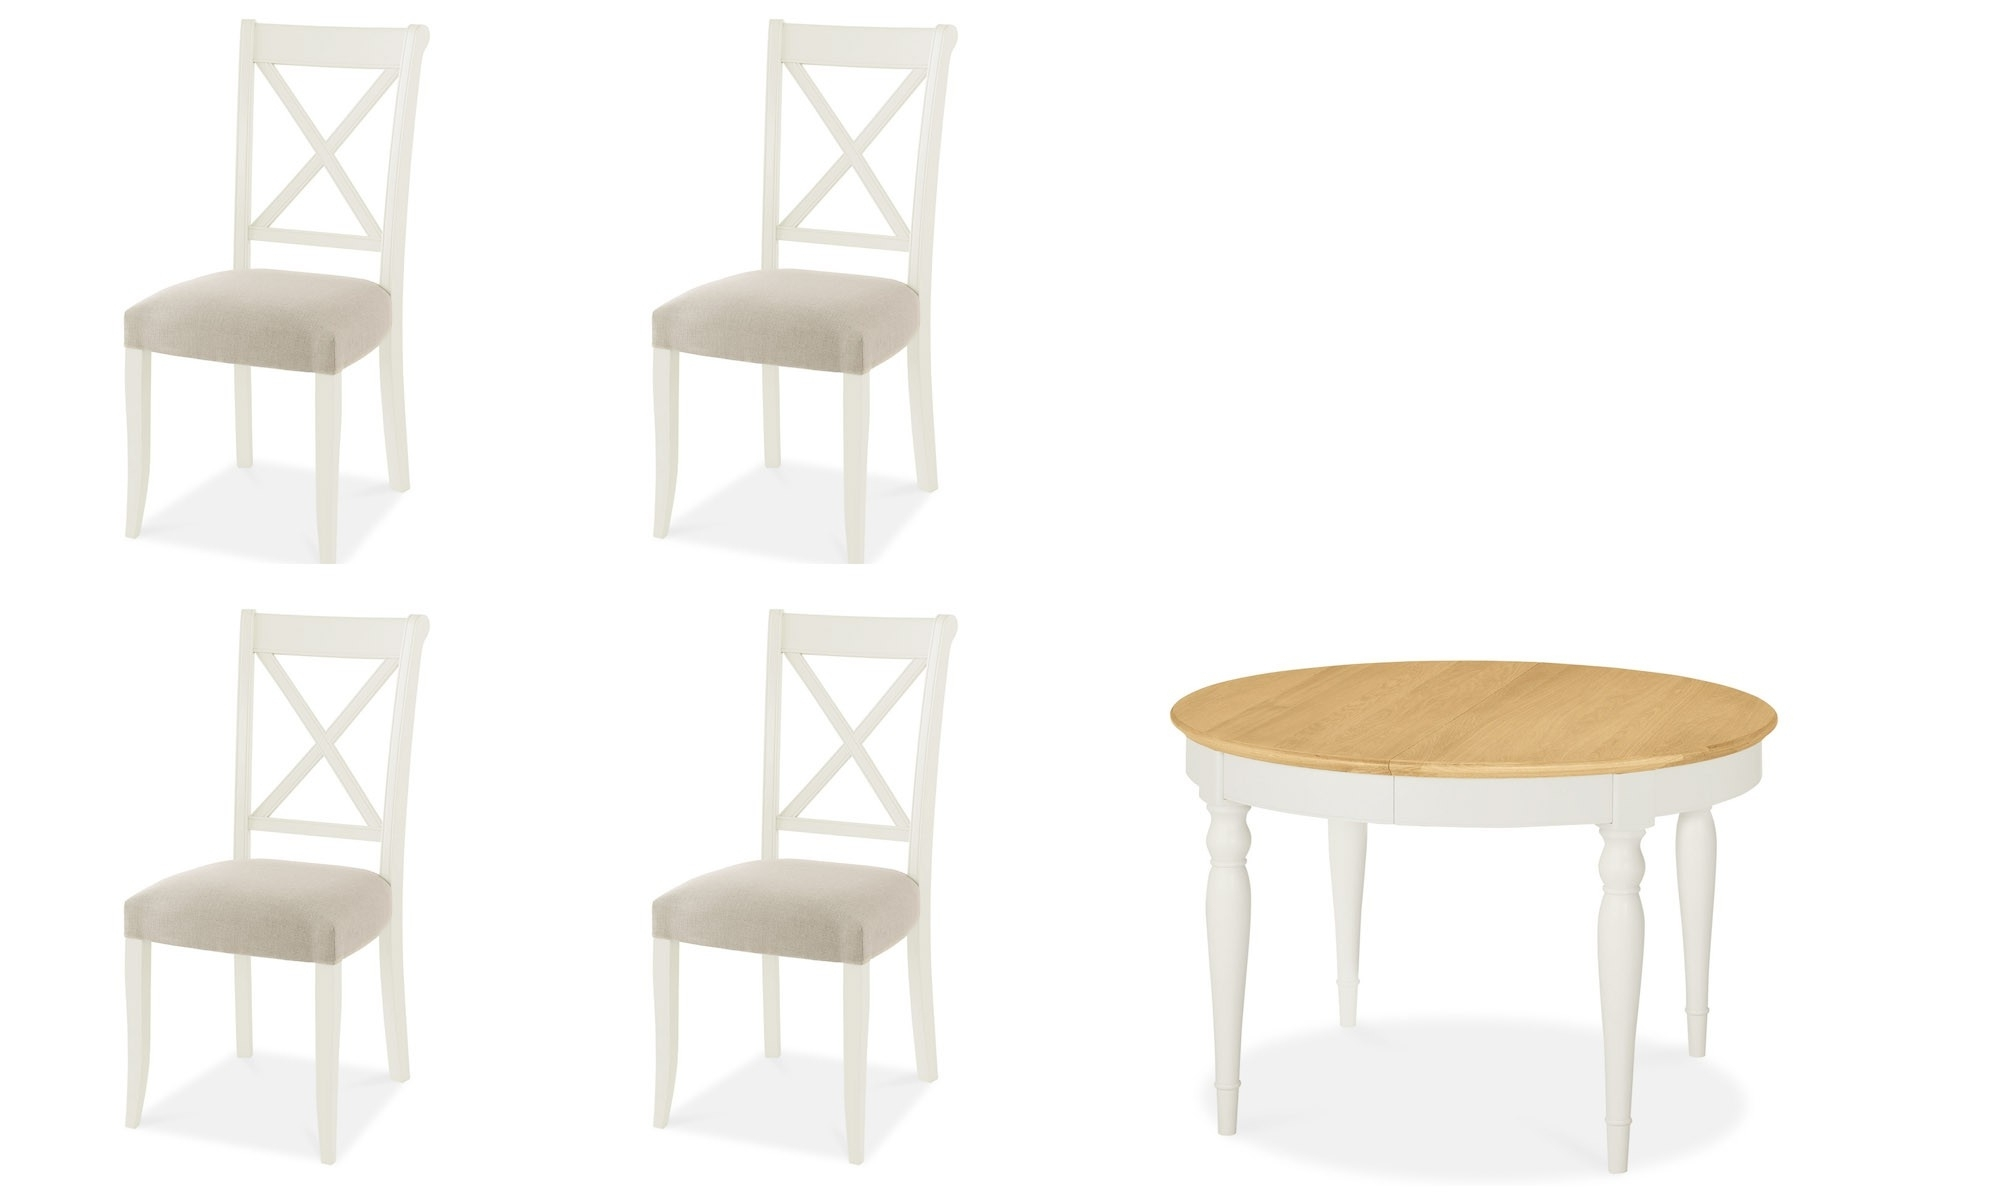 2018 Round Extending Dining Tables And Chairs Inside Georgie – Round Extending Dining Table And Chairs In Cream – Oak Top (View 12 of 25)